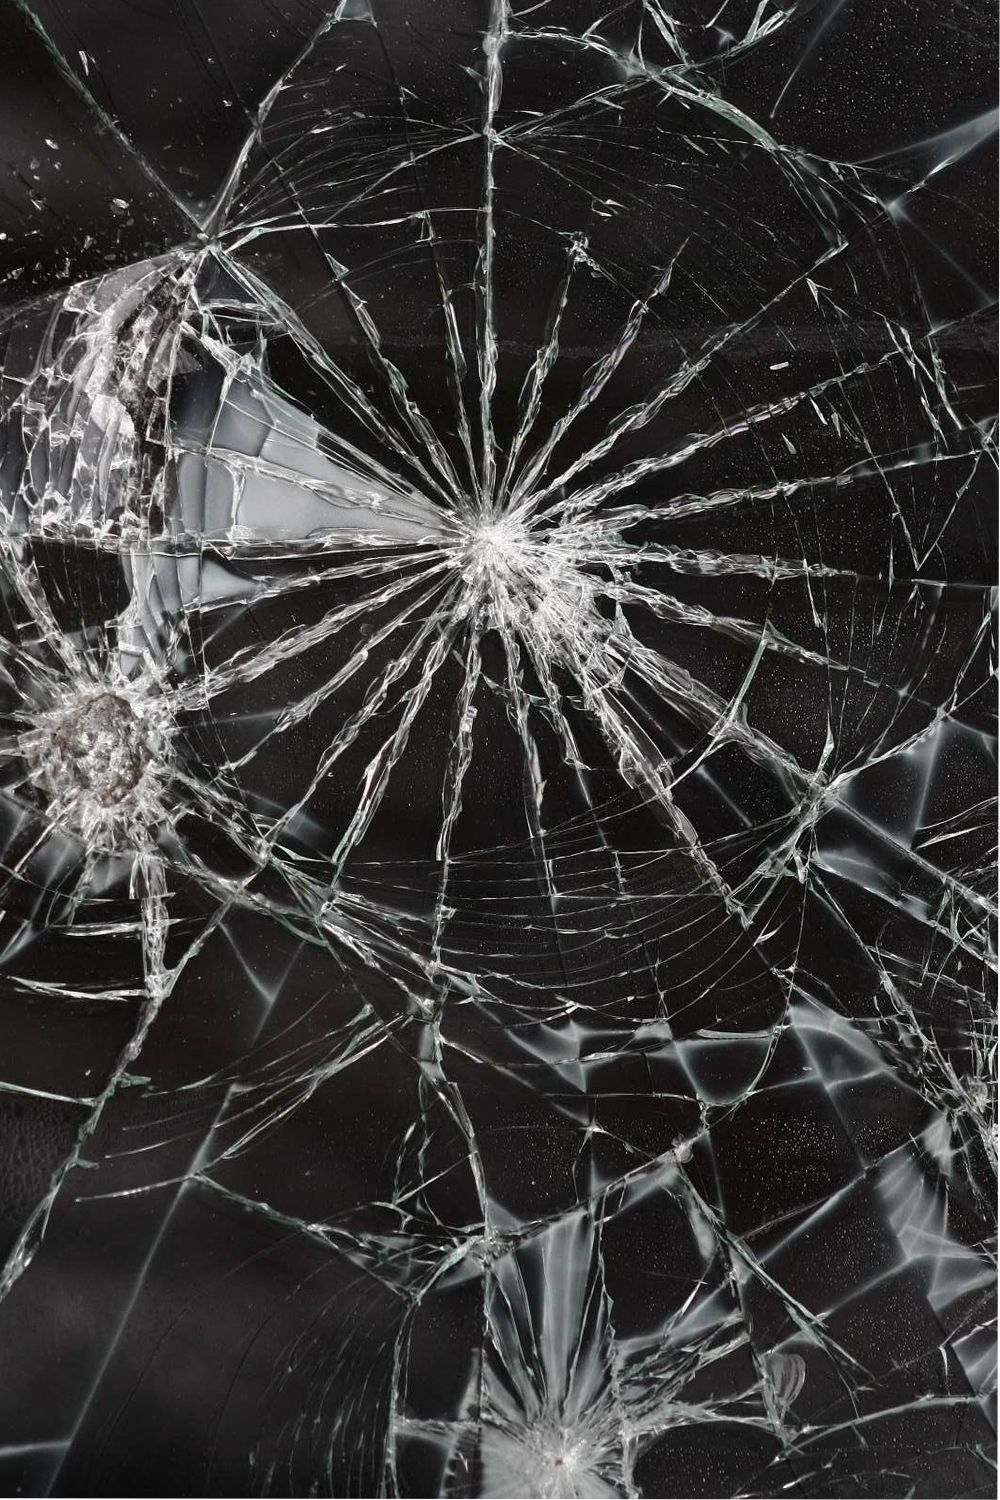 Best Broken Screen Wallpaper Hd Free Download In 2020 Broken Screen Wallpaper Broken Glass Wallpaper Cracked Wallpaper